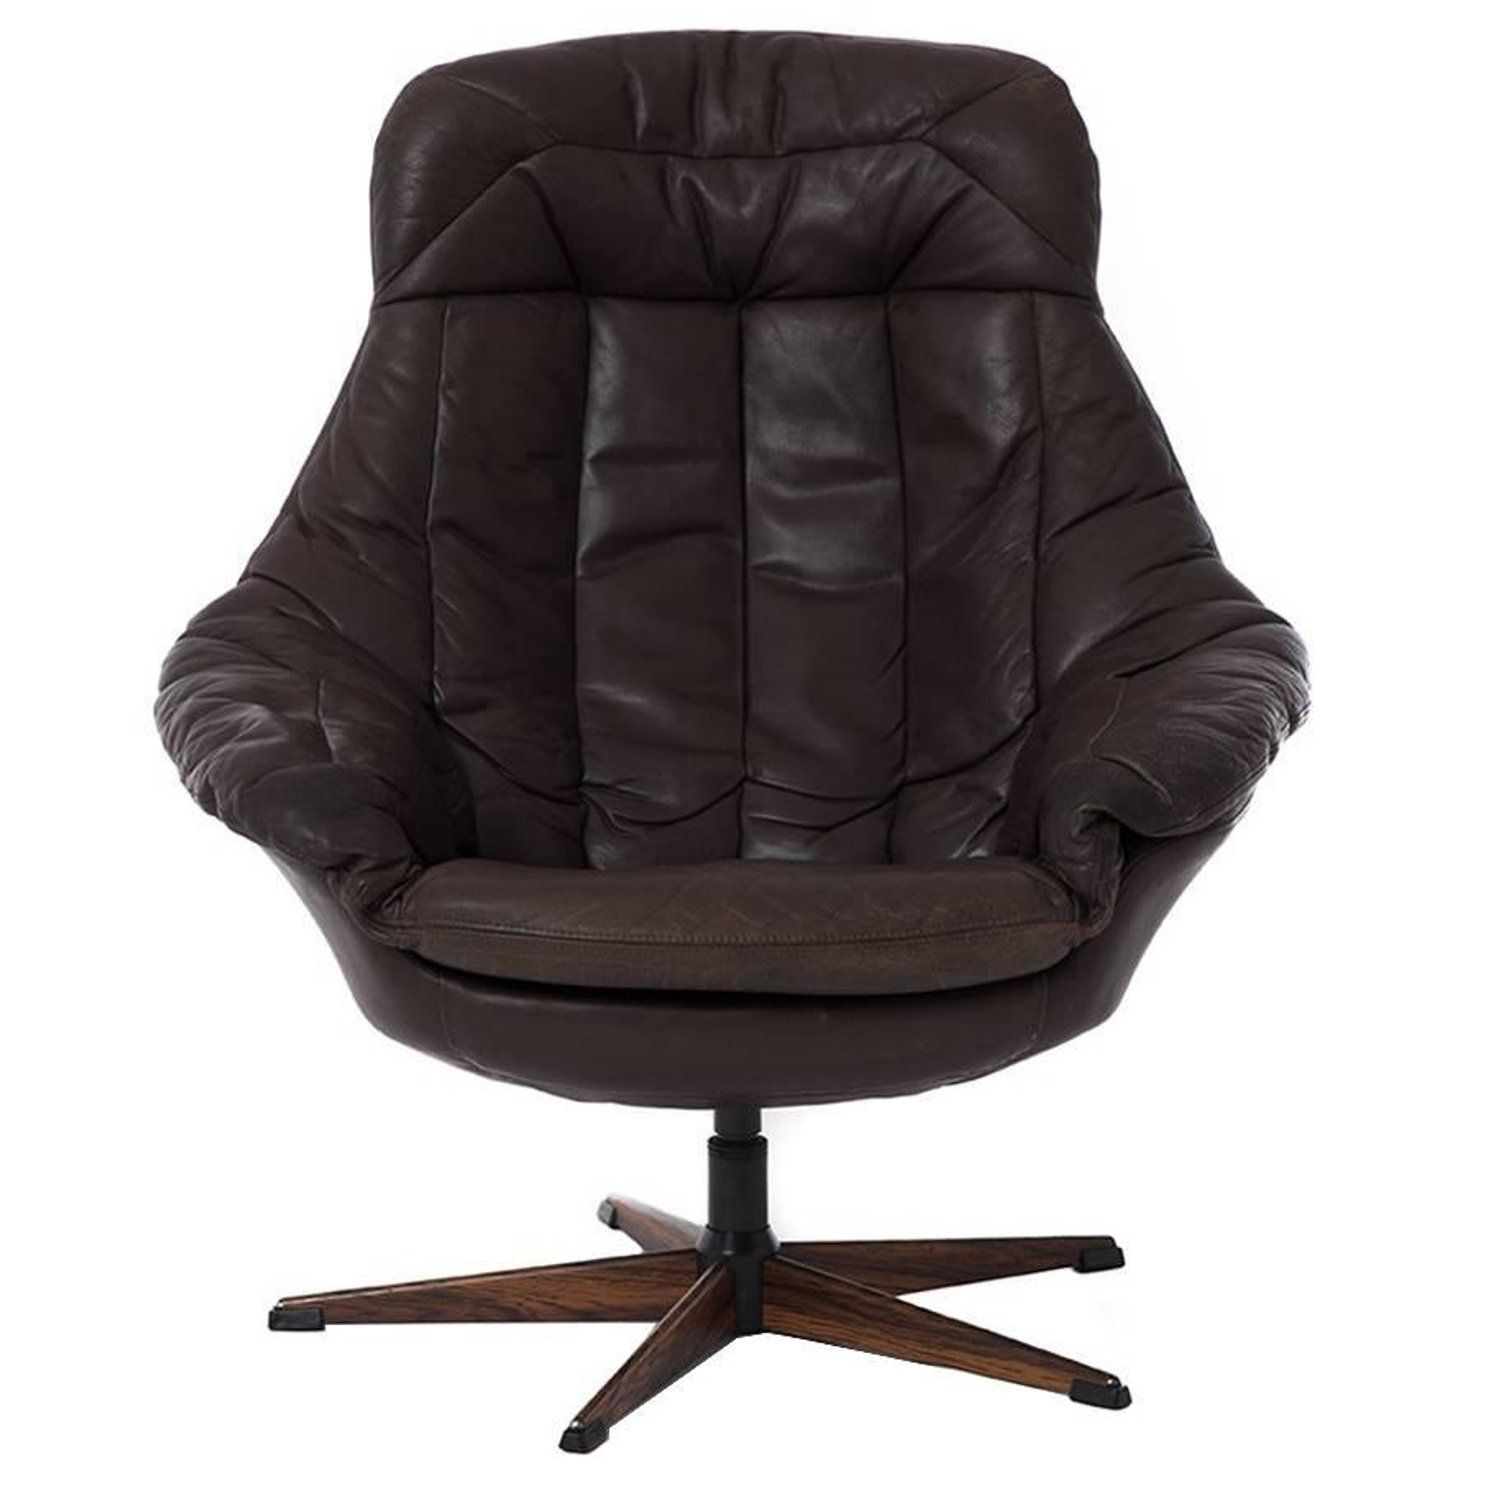 Danish Modern Swivel Glove Chair In Espresso Leatherh. W. Klein throughout Espresso Leather Swivel Chairs